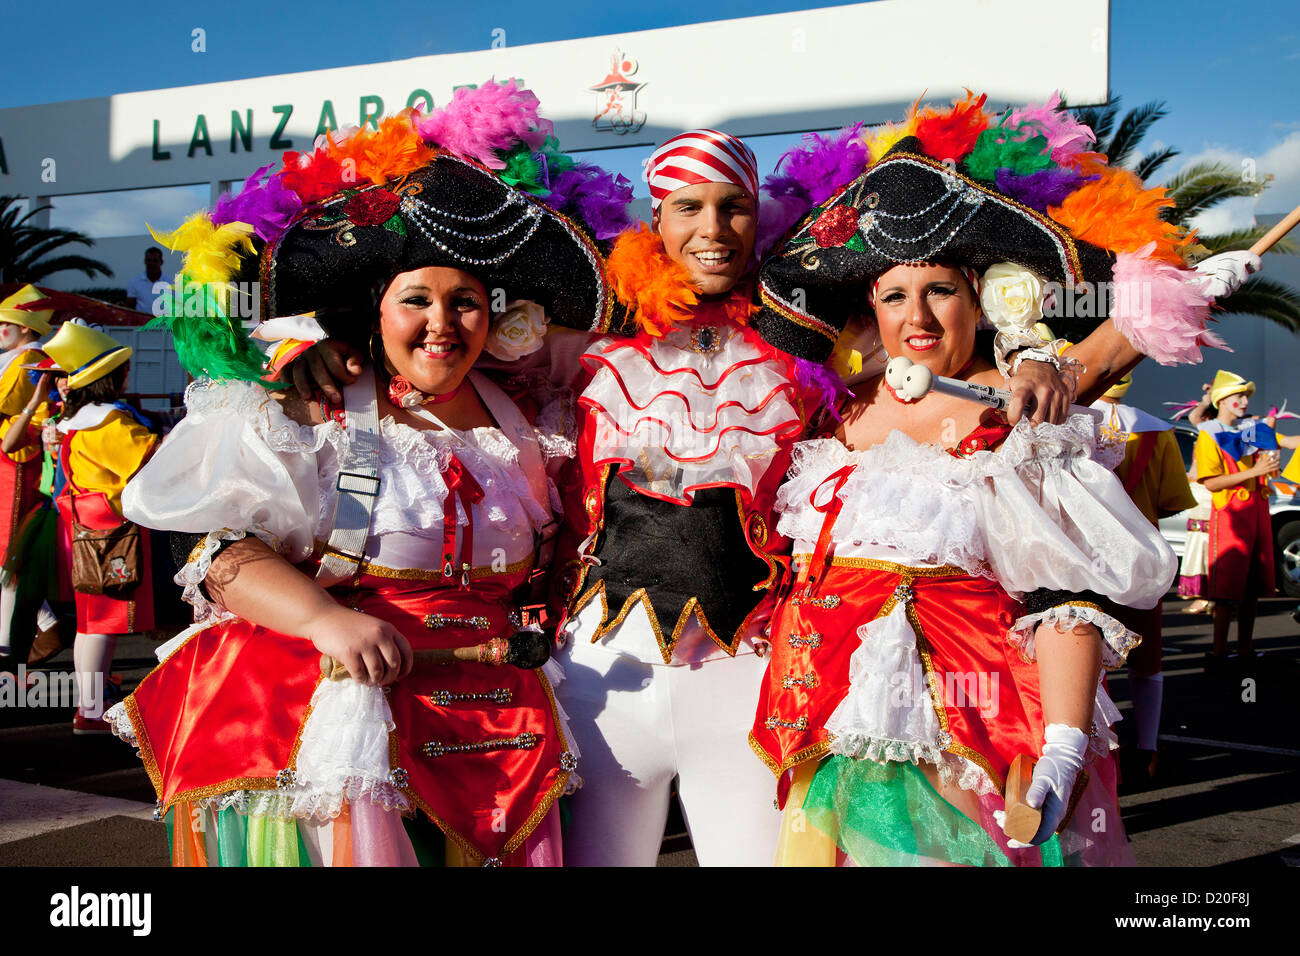 Disguised people at carnival procession, Arrecife, Lanzarote, Canary Islands, Spain, Europe - Stock Image